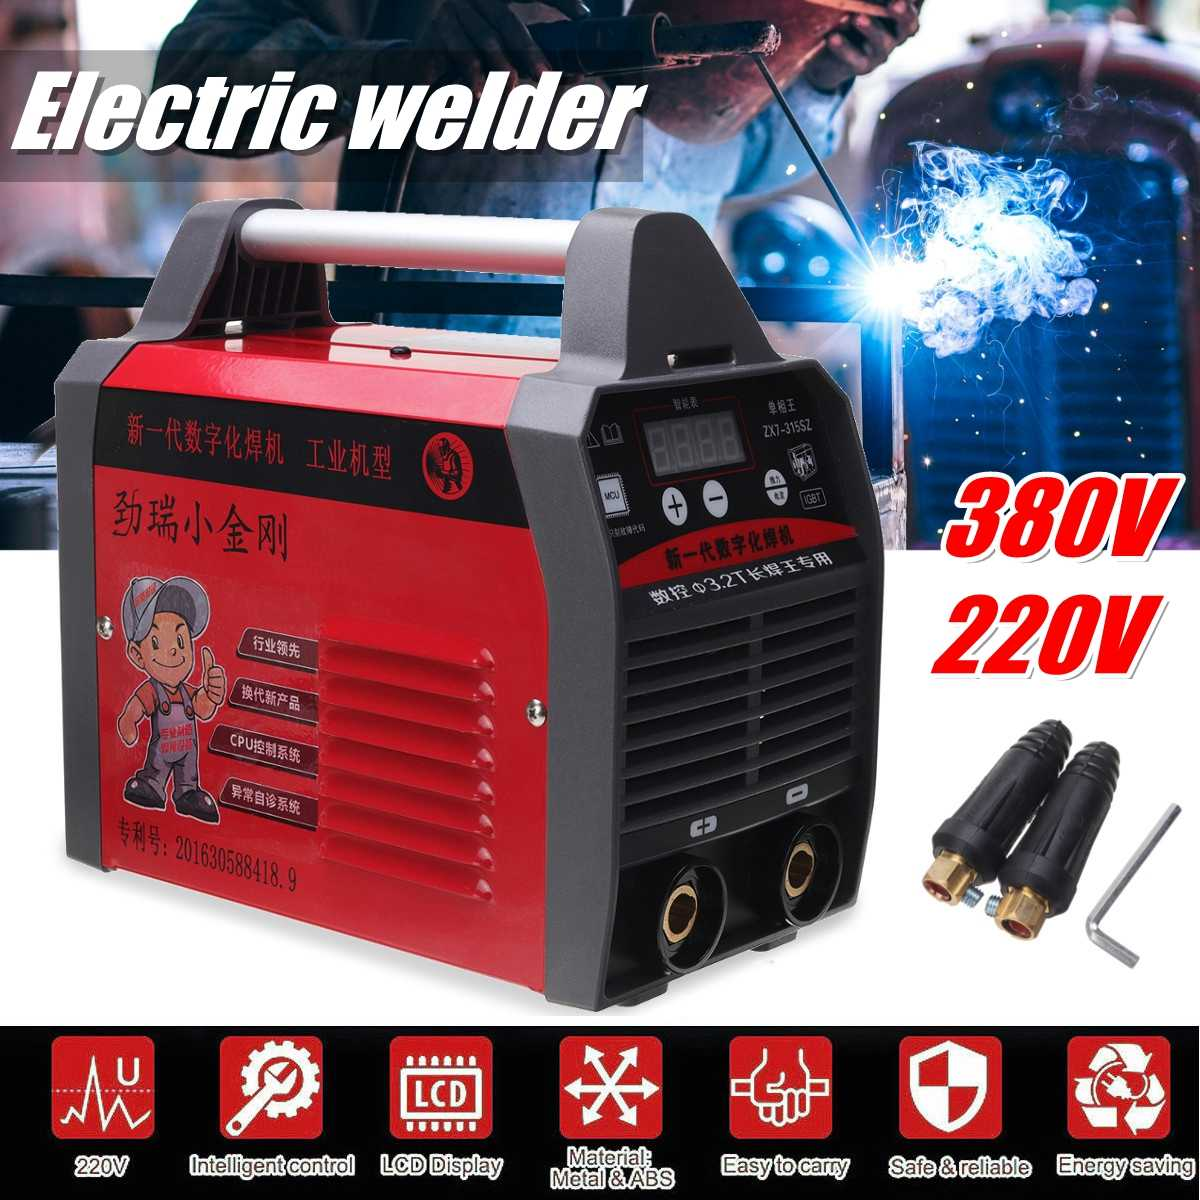 ZX7-315 IGBT Inverter Arc Electric Welding Machine 220V/380V MMA Welders for Welding Working and Electric WorkingZX7-315 IGBT Inverter Arc Electric Welding Machine 220V/380V MMA Welders for Welding Working and Electric Working